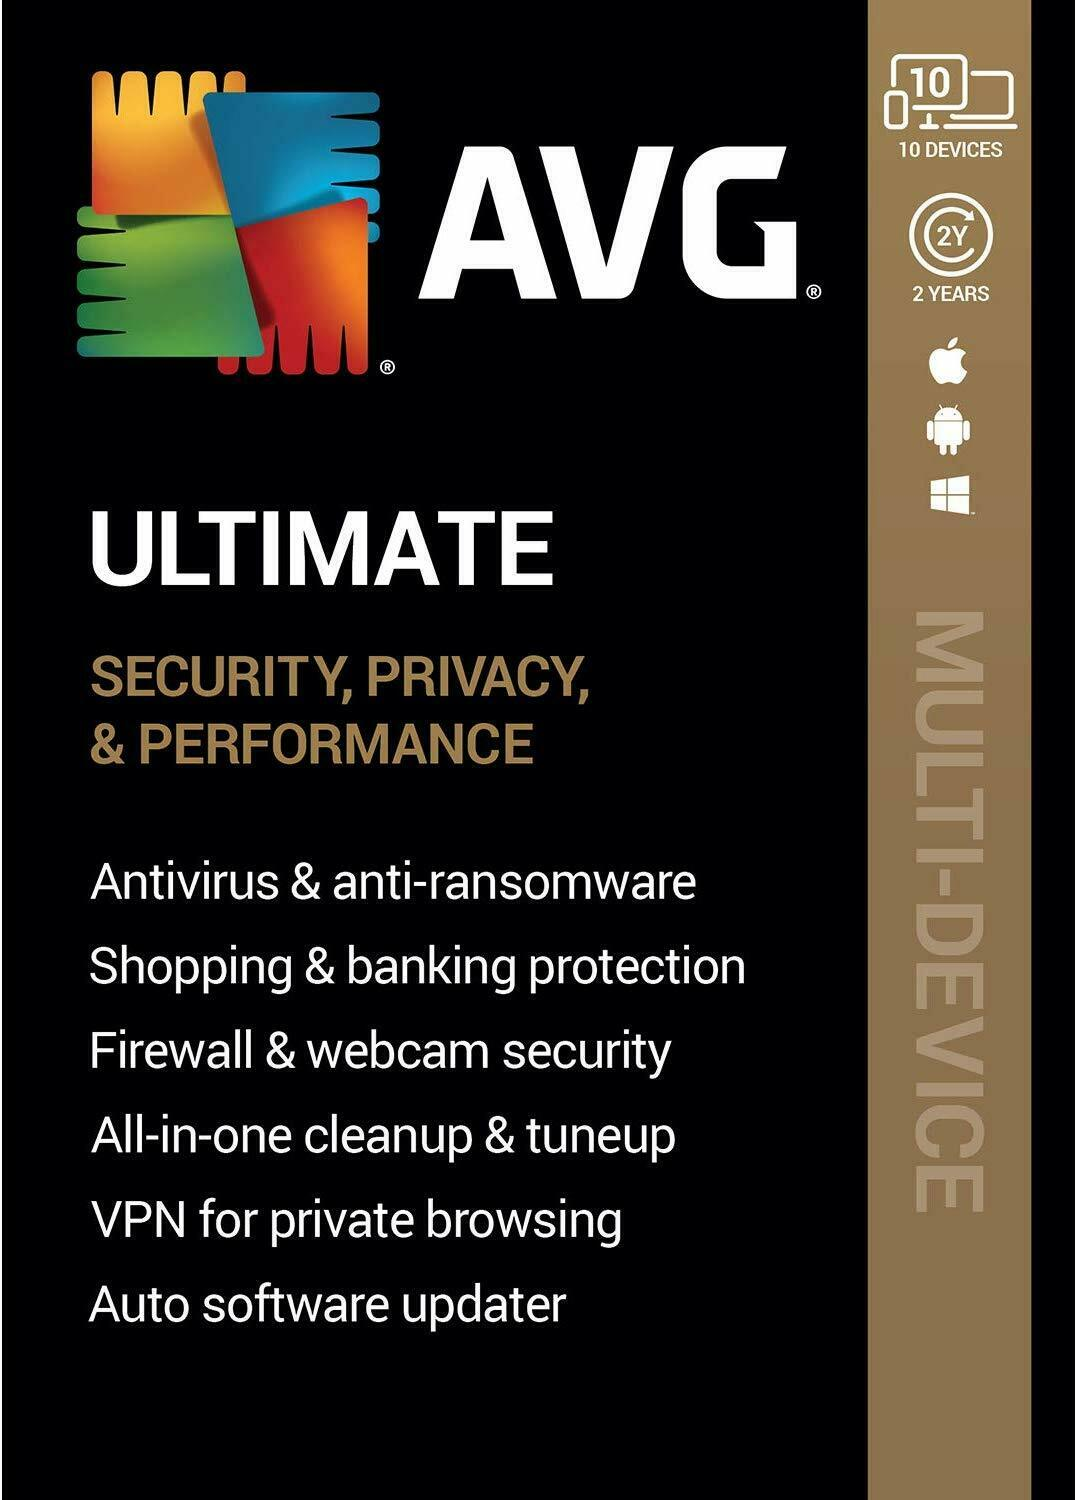 AVG ULTIMATE 2020 - FOR 10 DEVICES - 2 YEAR - NOW INCLUDES SECURE VPN - DOWNLOAD